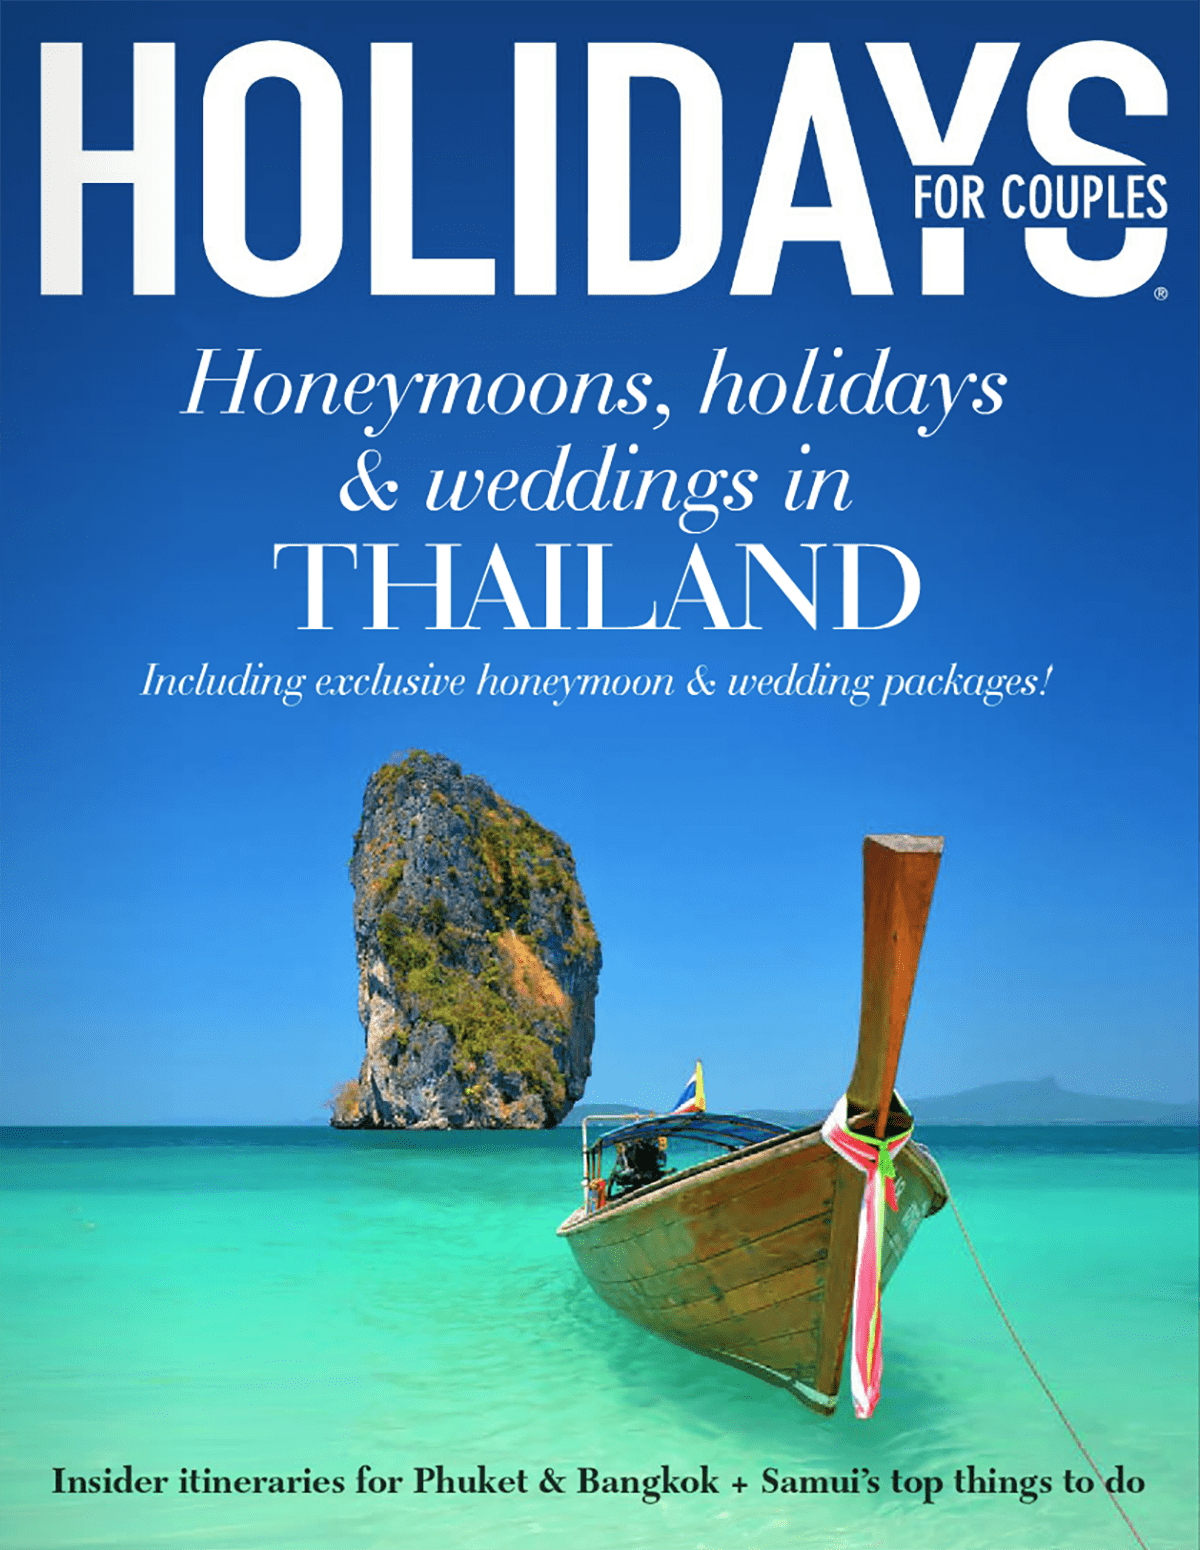 Holidays for Couples Honeymoons, Holidays & weddings in Thailand